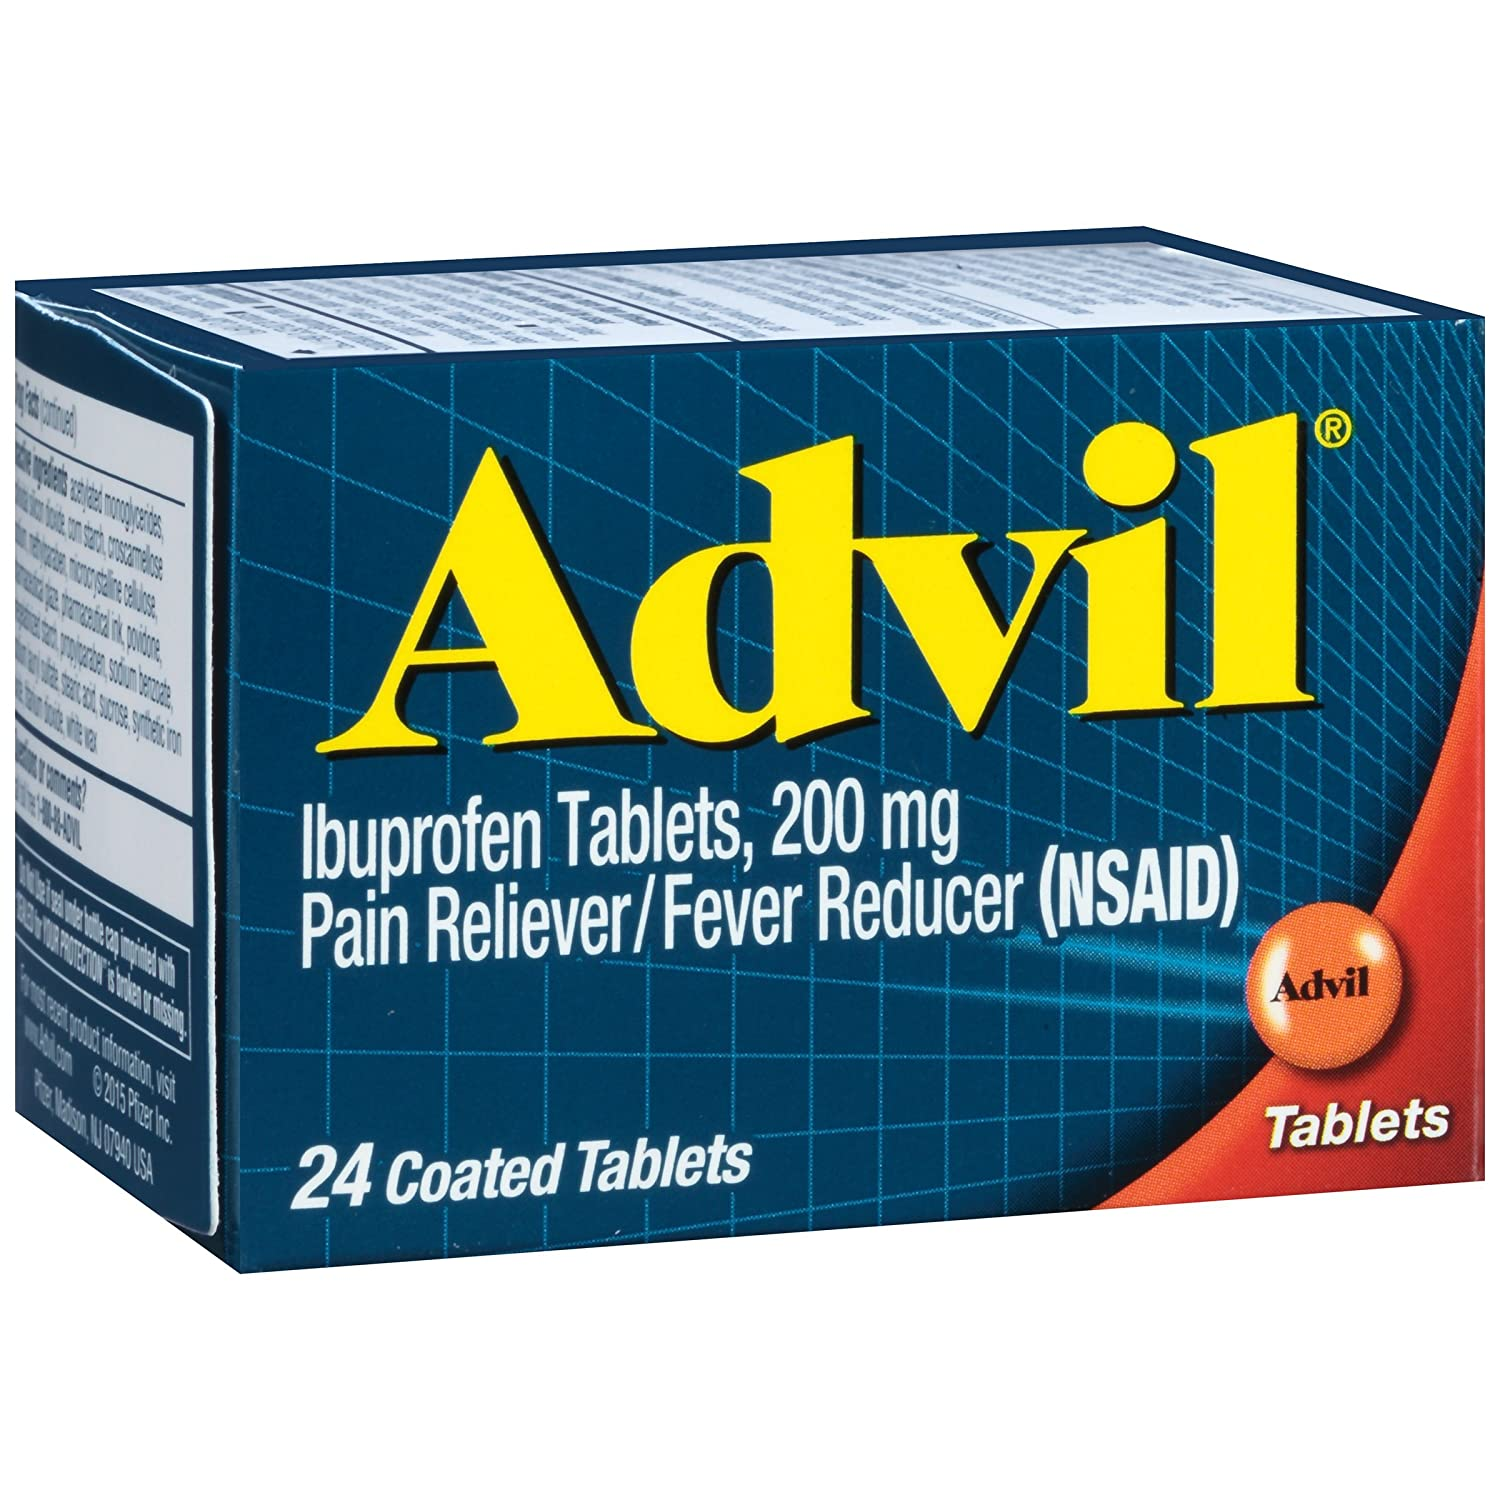 Advil (24 Count) Pain Reliever/Fever Reducer Coated Tablet, 200mg Ibuprofen, Temporary Pain Relief by Advil